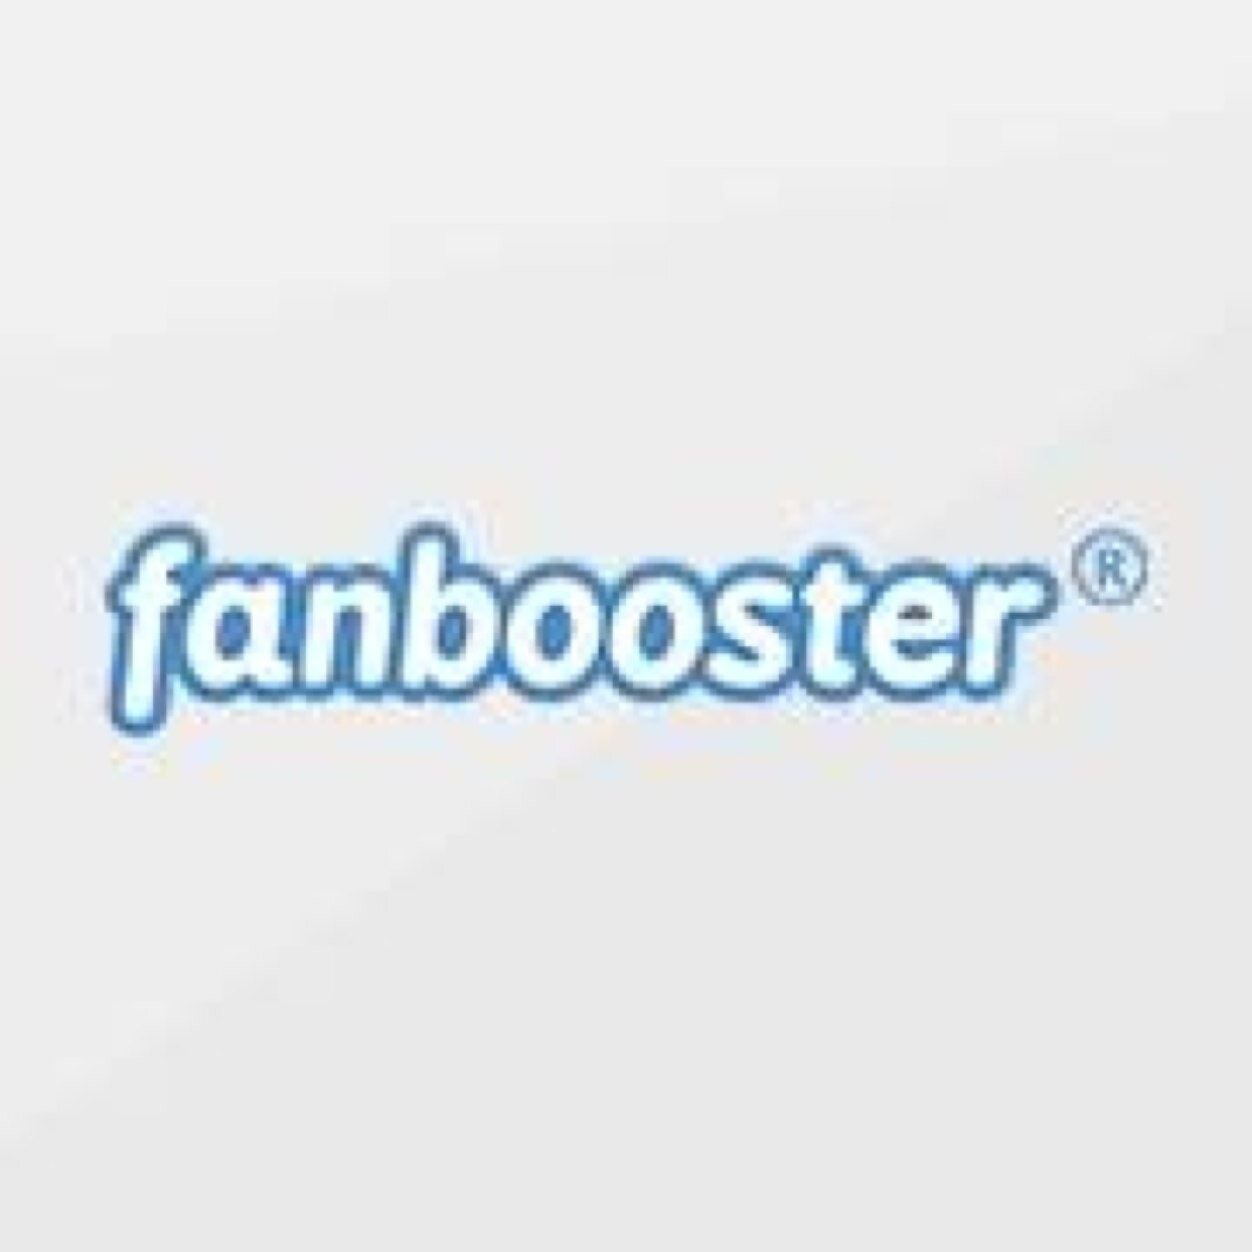 Fanbooster